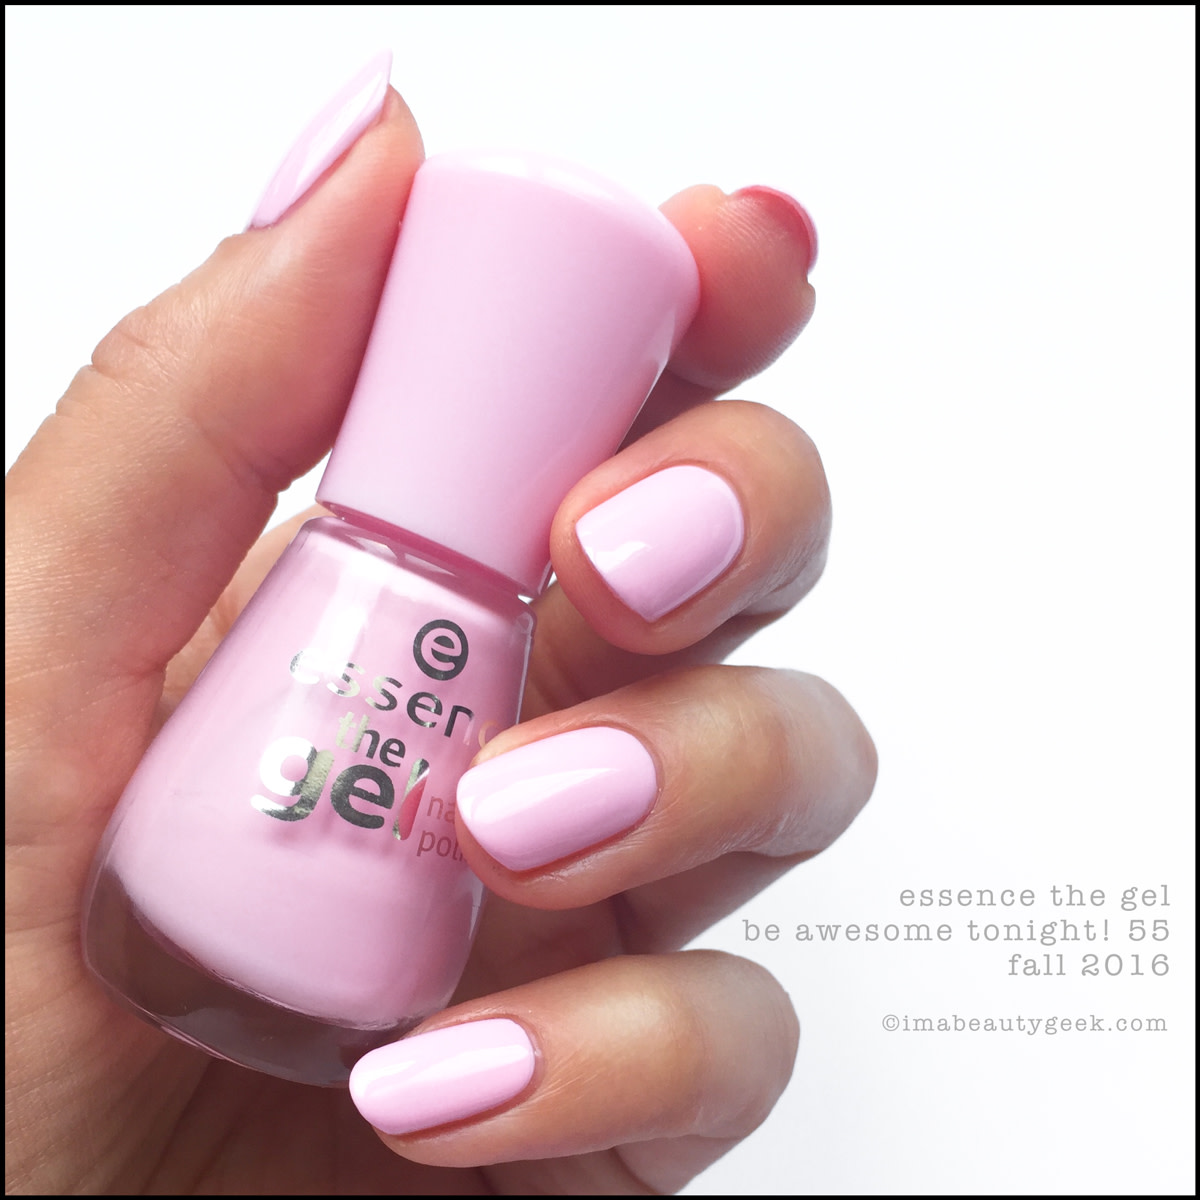 Essence Nail Polish Be Awesome Tonight The Gel 2016